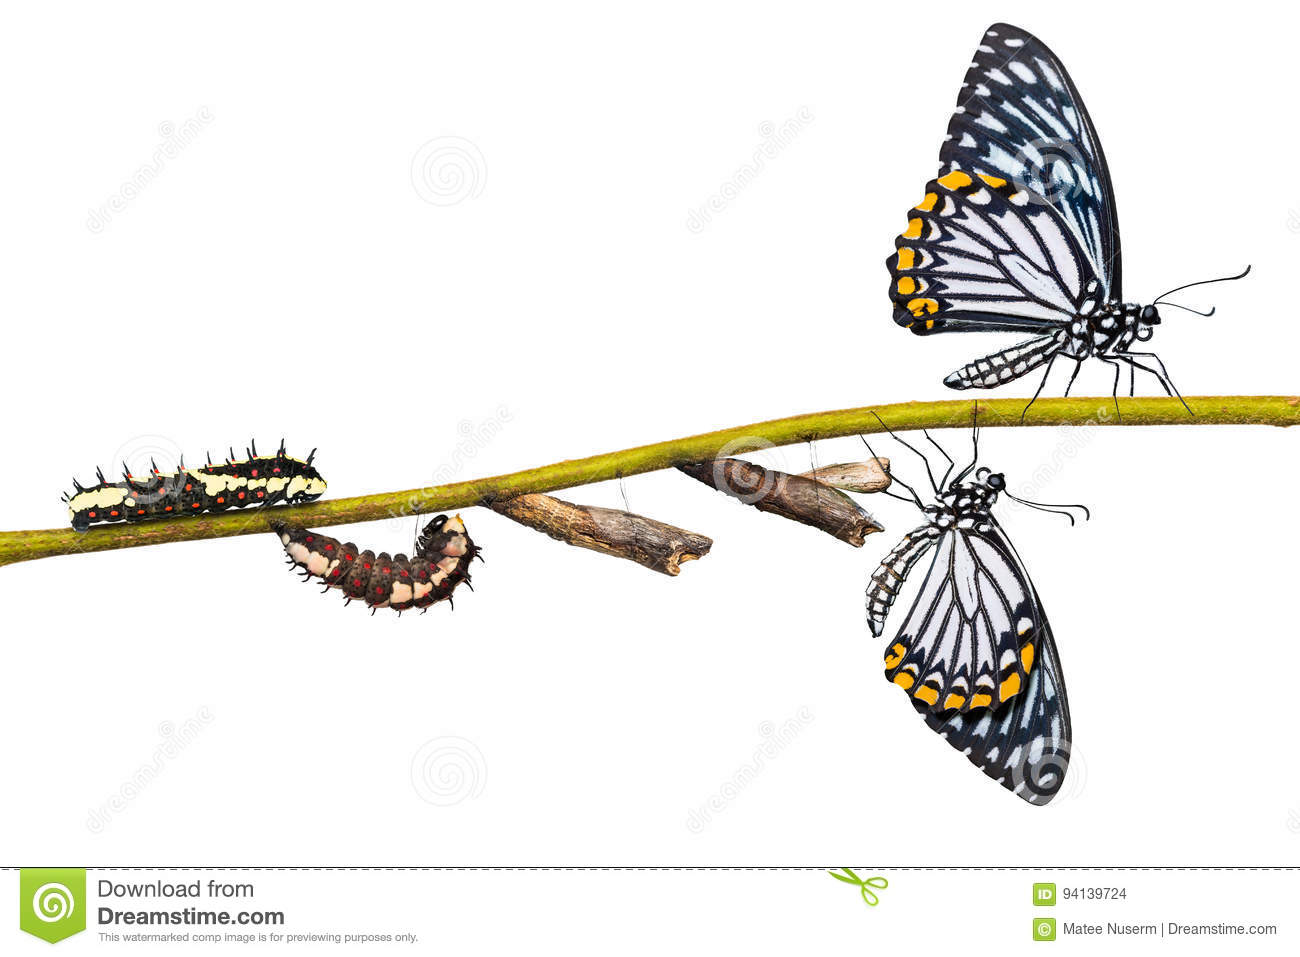 Common Mime Papilio clytia butterfly life cycle